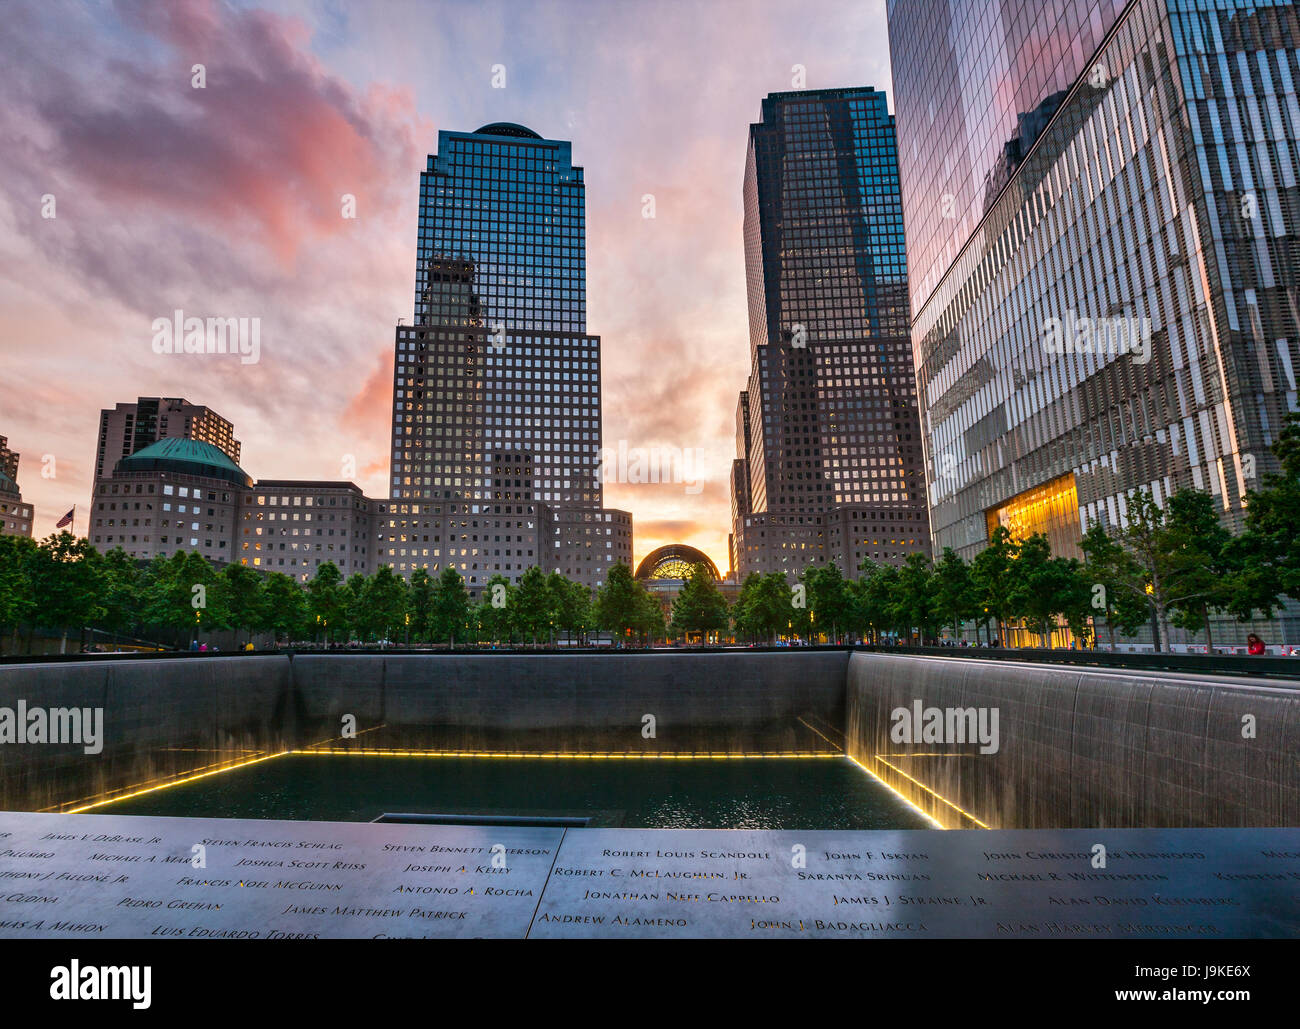 9/11 Memorial, The National September 11 Memorial & Museum at sunset, New York - Stock Image